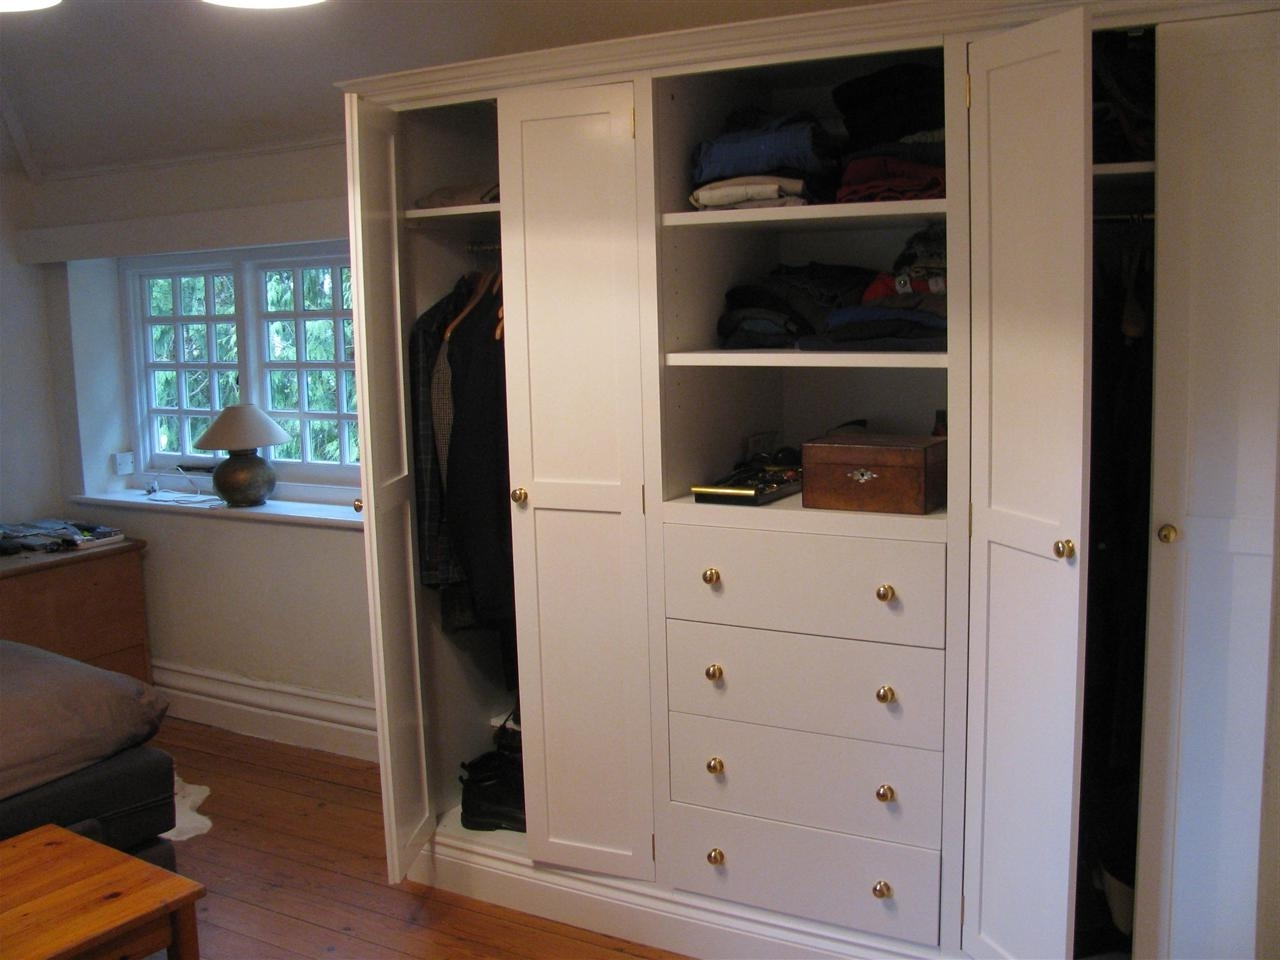 2018 Wardrobe Cabinet With Shelves Drawers And One Door Single With Regard To Wardrobe With Shelves And Drawers (View 1 of 15)